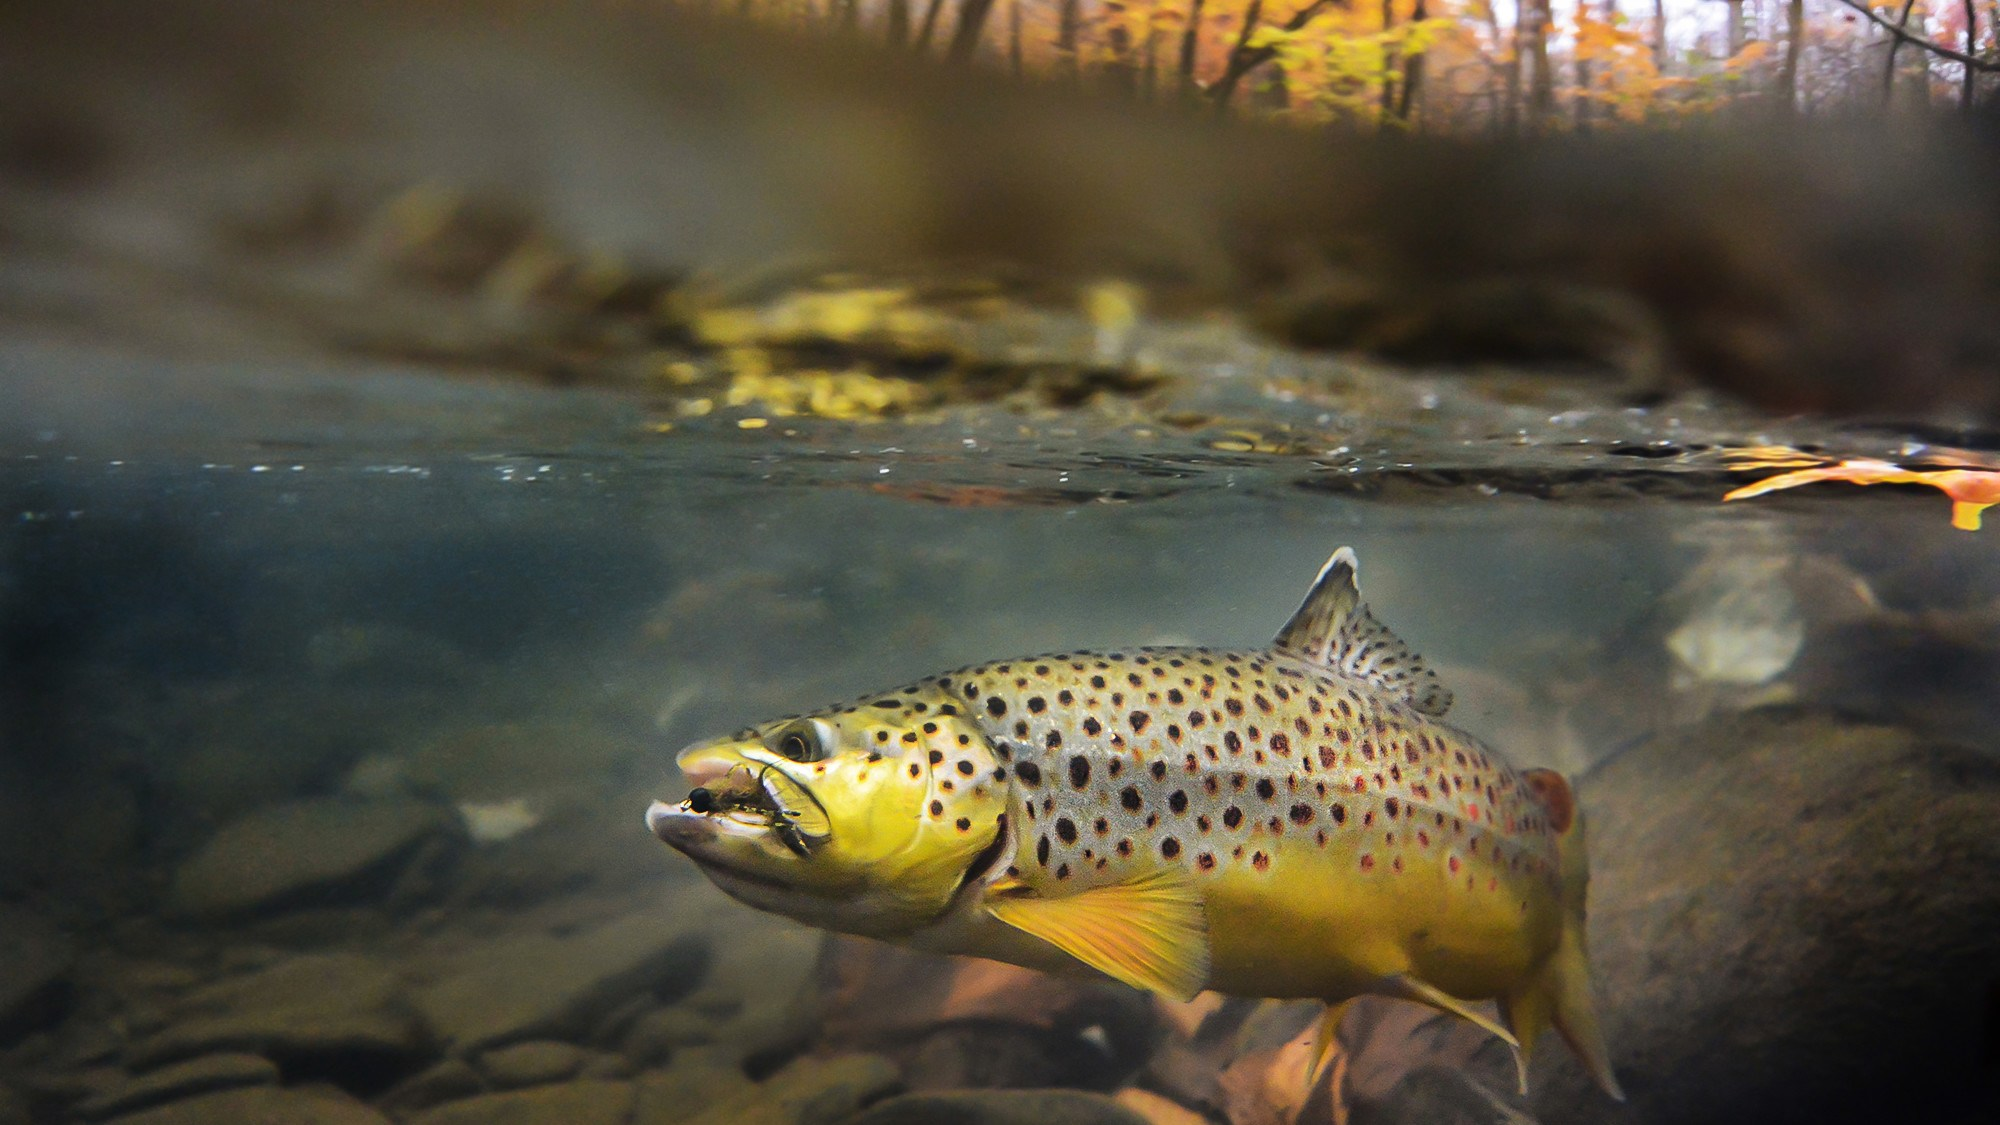 Fly   Fly Fishing 942097   HD Wallpaper Download 2000x1125